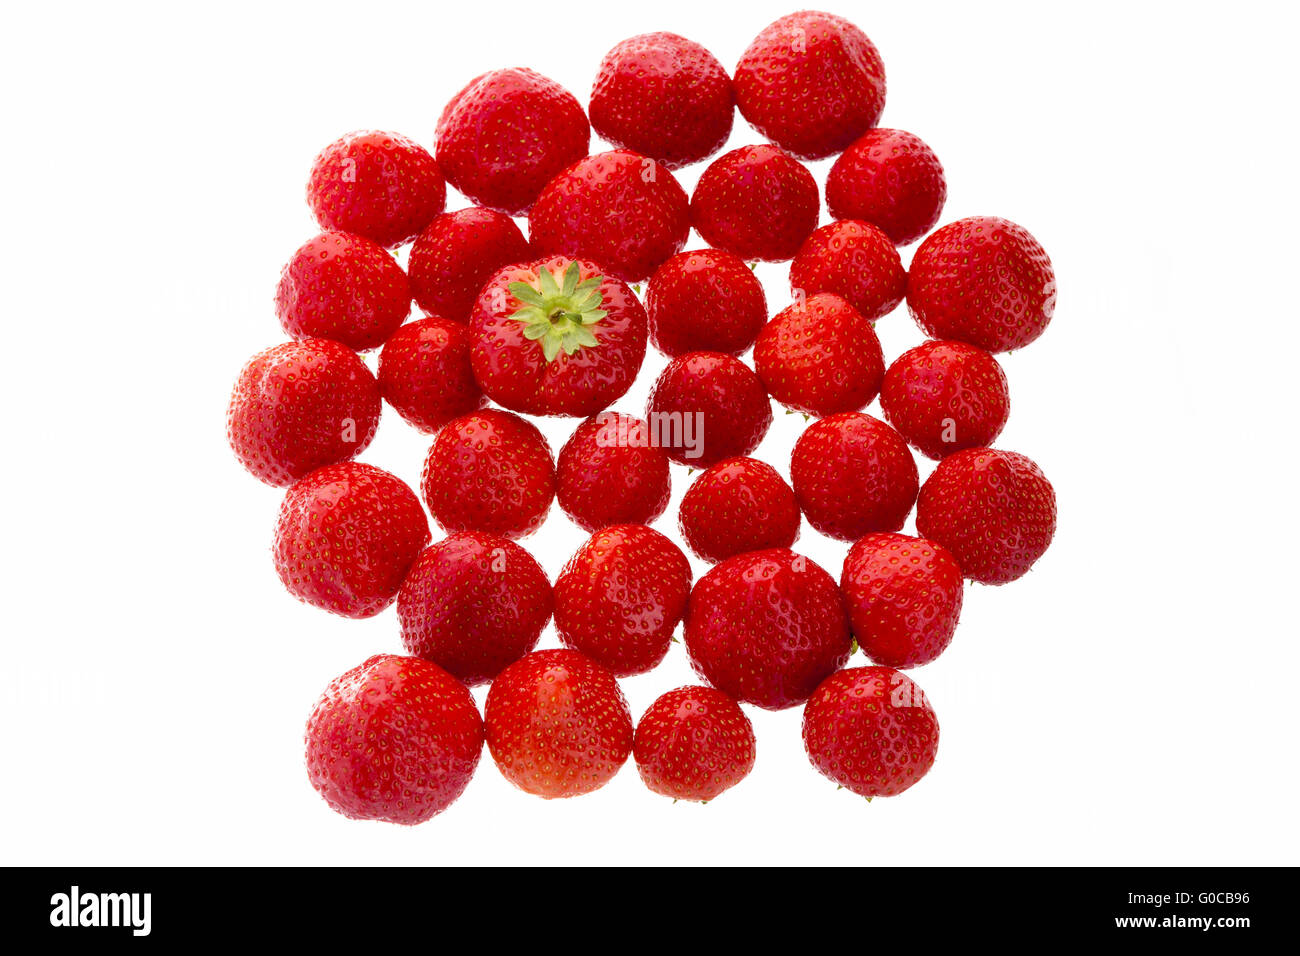 Big Strawberry Standing Out From The Crowd - Stock Image